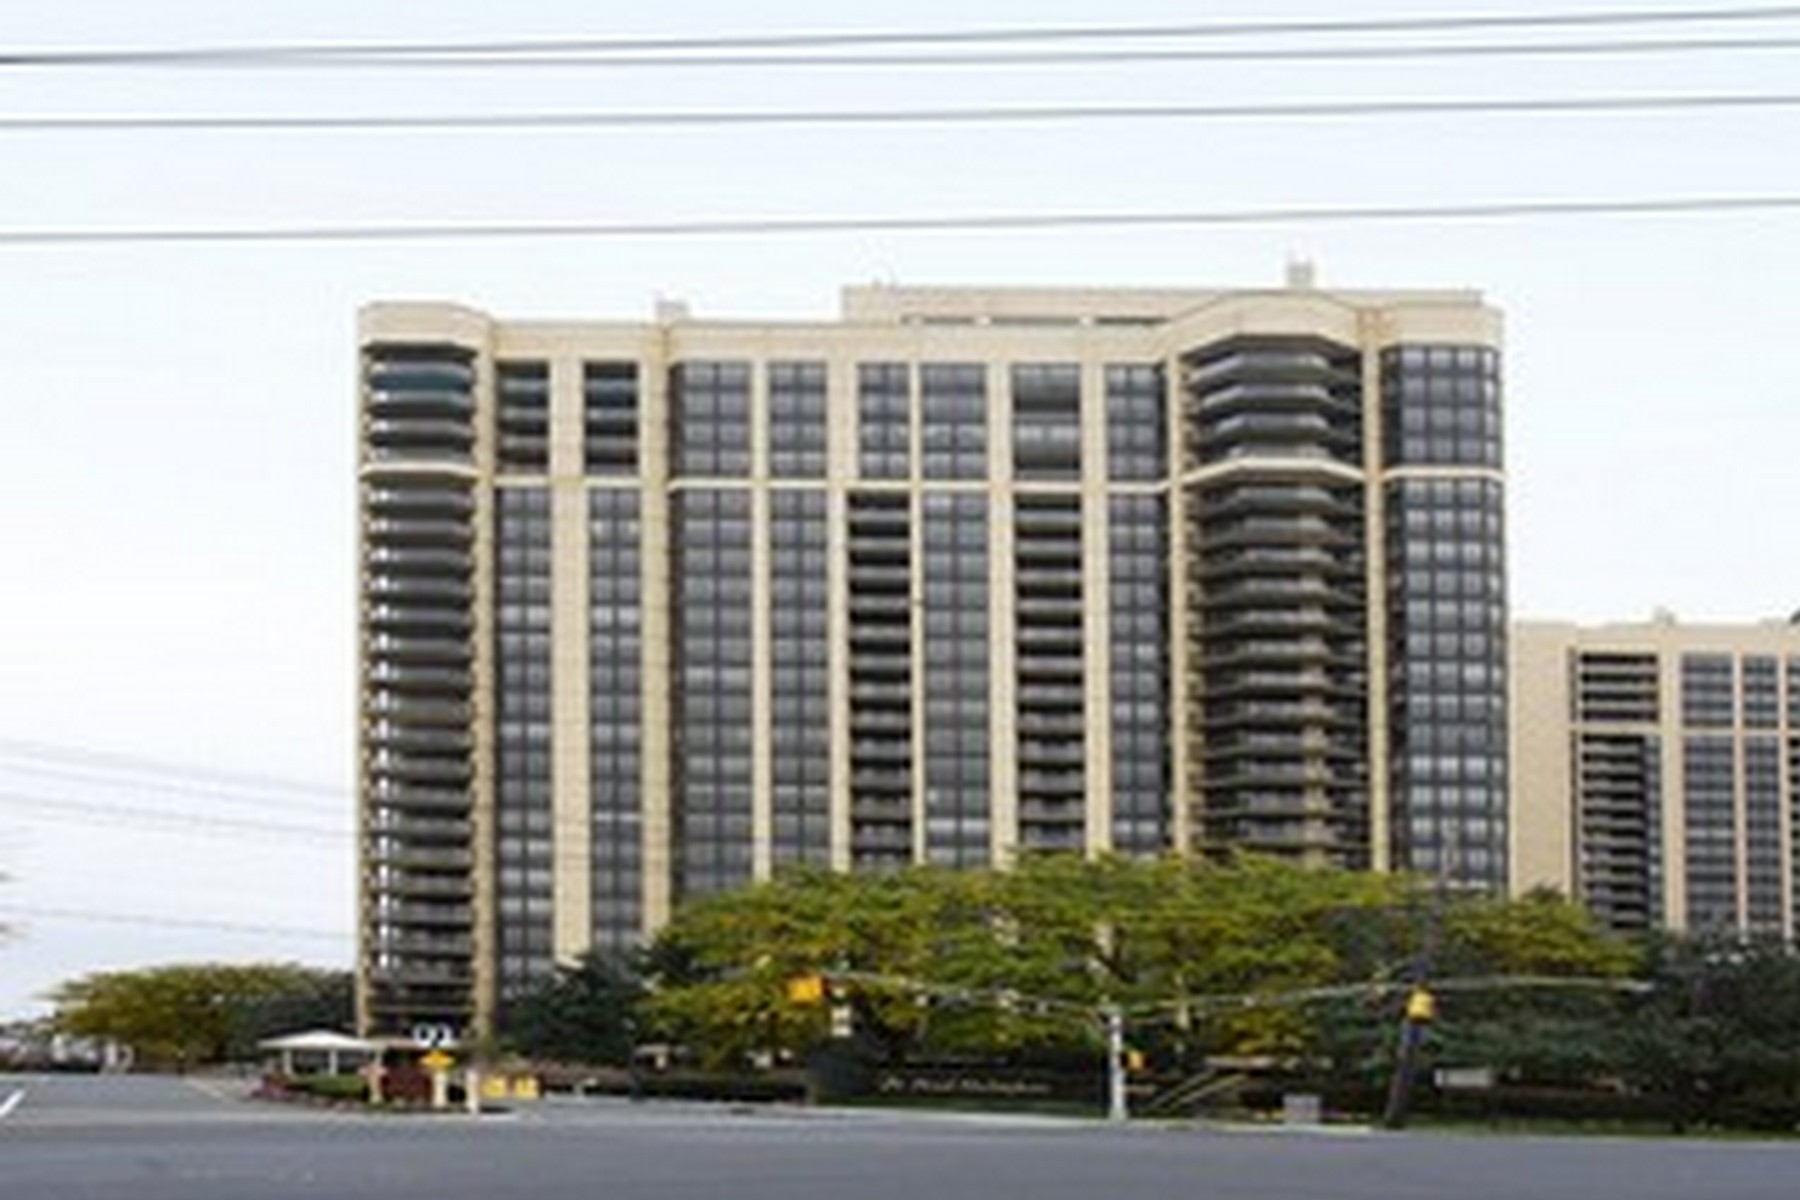 Condominium for Sale at The Royal Buckingham 900 Palisade Avenue, #16C, Fort Lee, New Jersey, 07024 United States